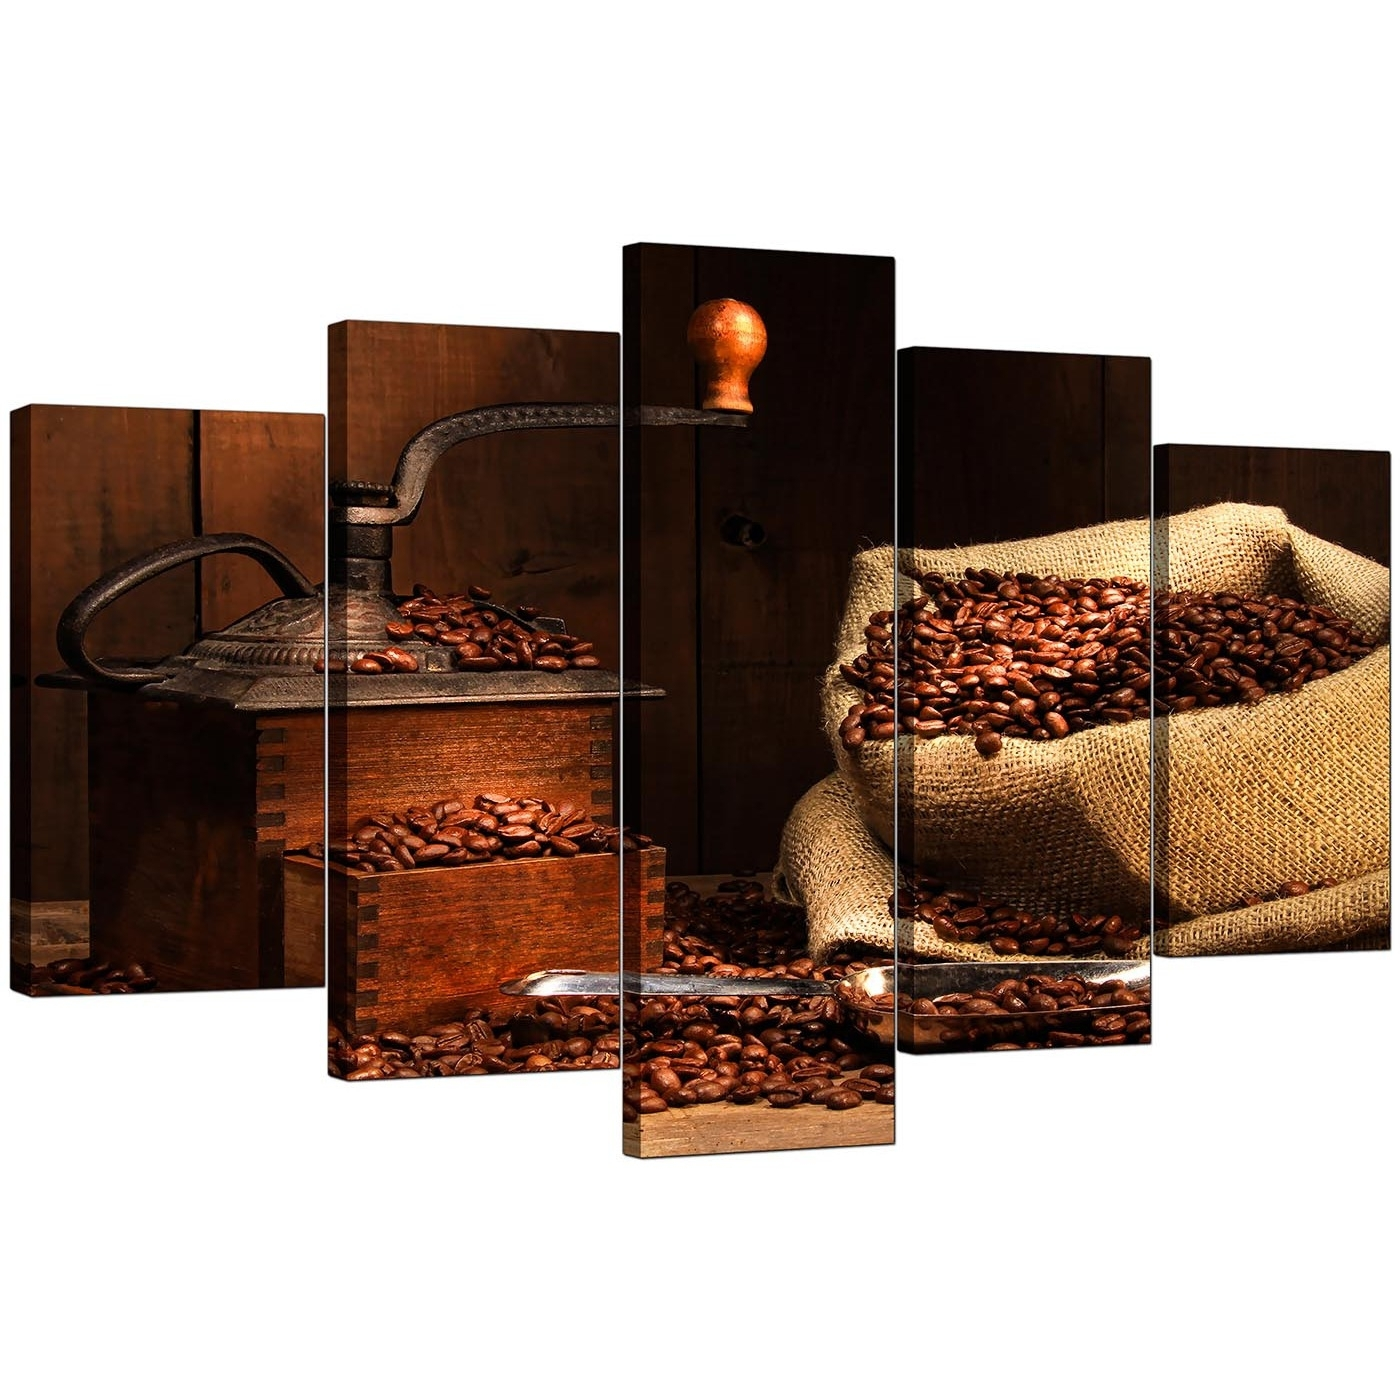 Extra Large Coffee Beans Canvas Wall Art 5 Piece In Brown In Recent Coffee Canvas Wall Art (Gallery 4 of 15)